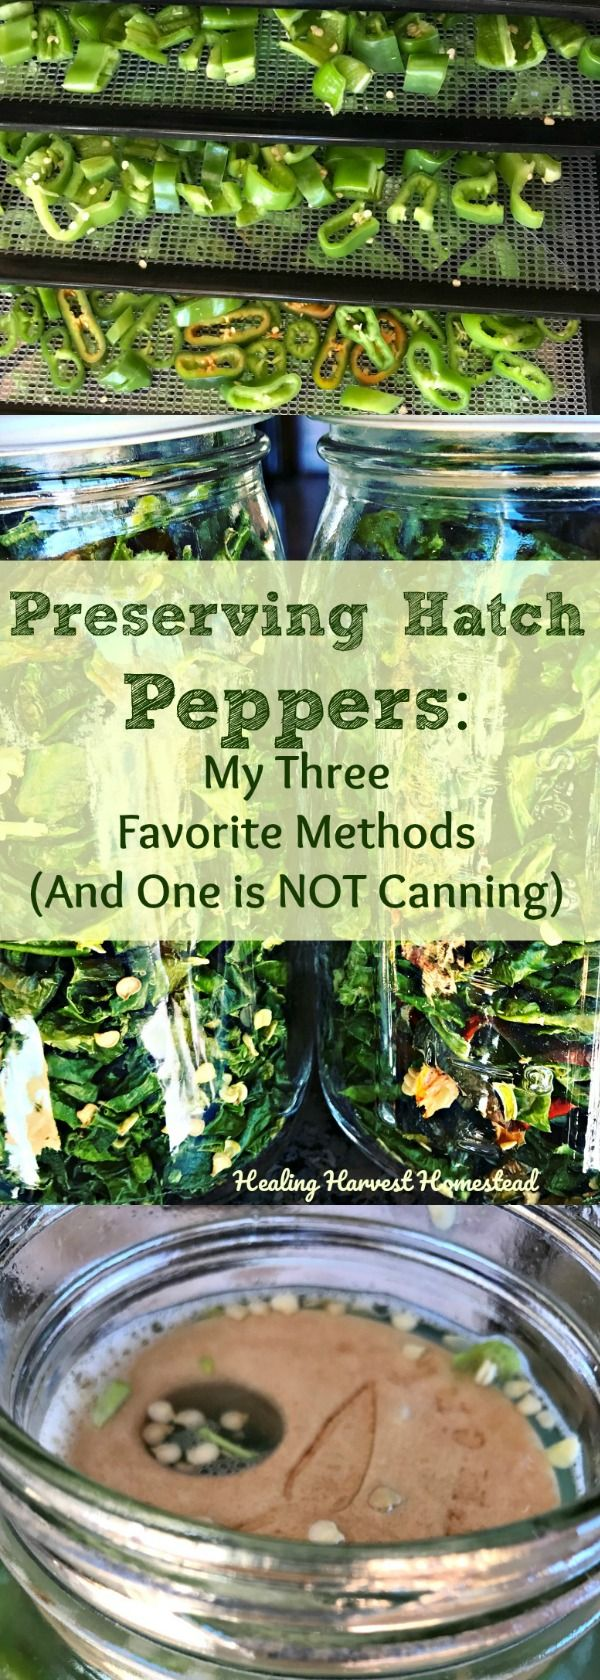 Do you have lots of peppers this harvest season? We have too many to eat! Here are my three favorite methods of preserving peppers. Find out how to preserve peppers! Food preservation is a hot thing right now!